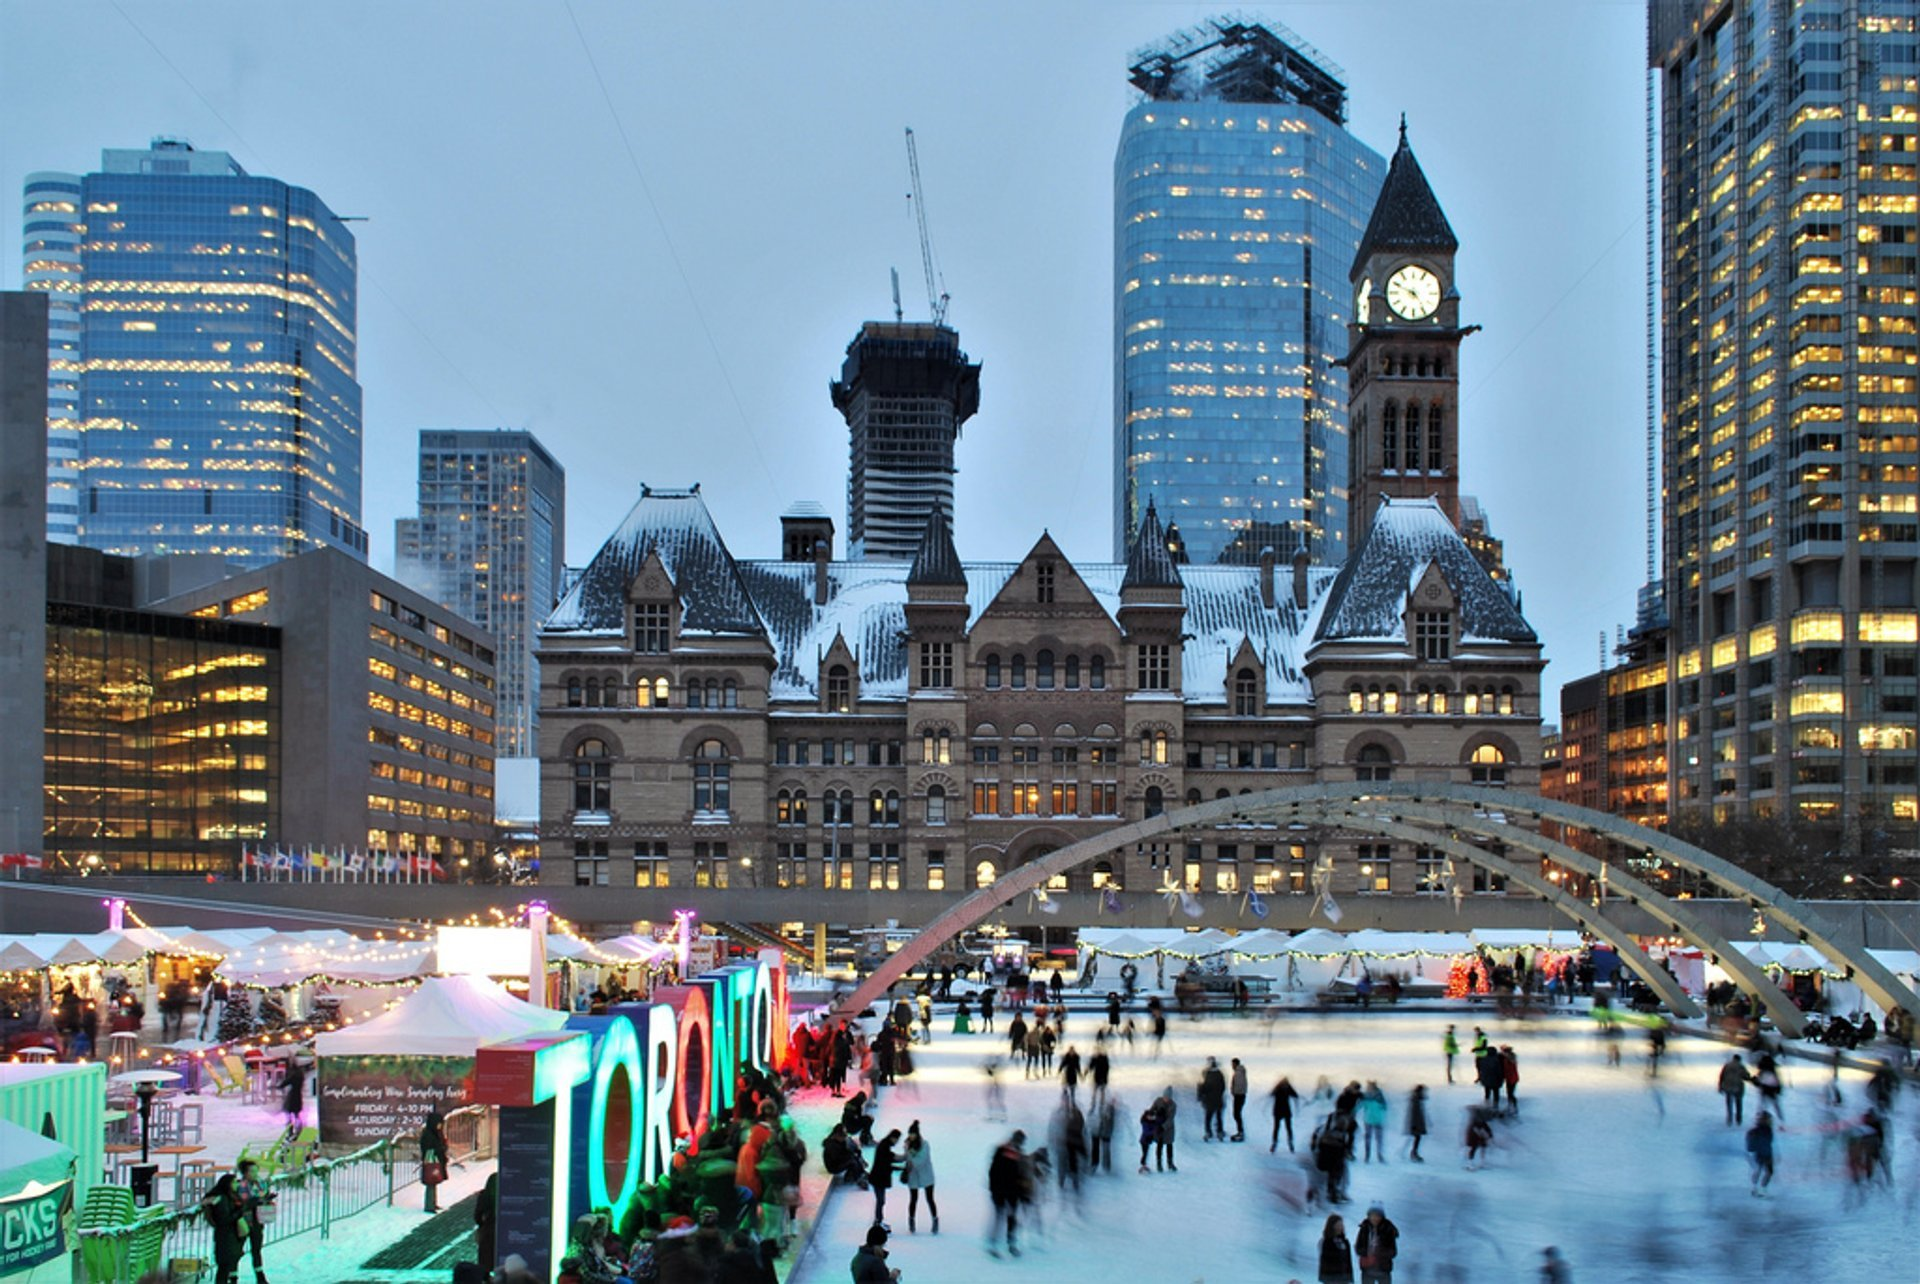 Holiday Fair in the Square in Toronto 2020 - Best Time